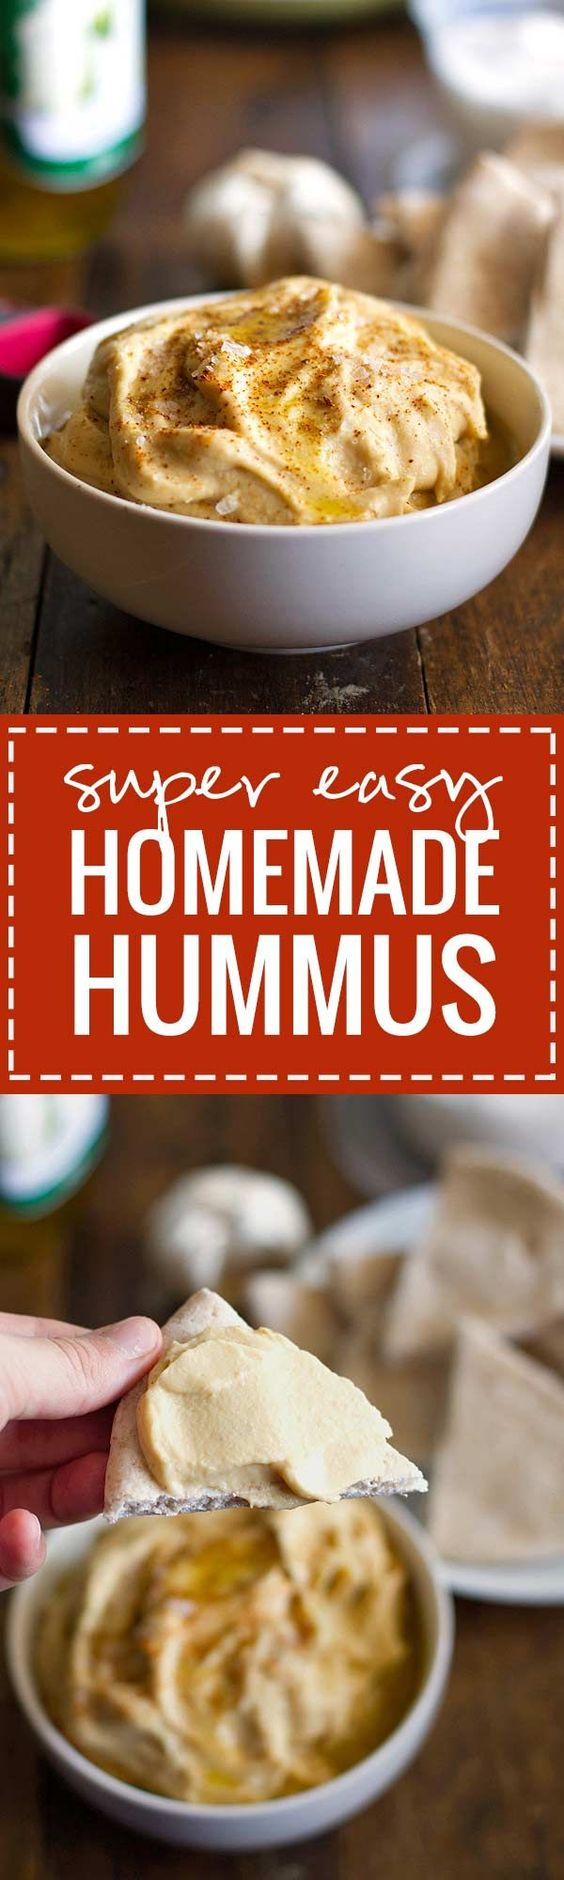 Super Easy Homemade Hummus - This hummus is simple and blended with fresh ingredients | pinchofyum.com: